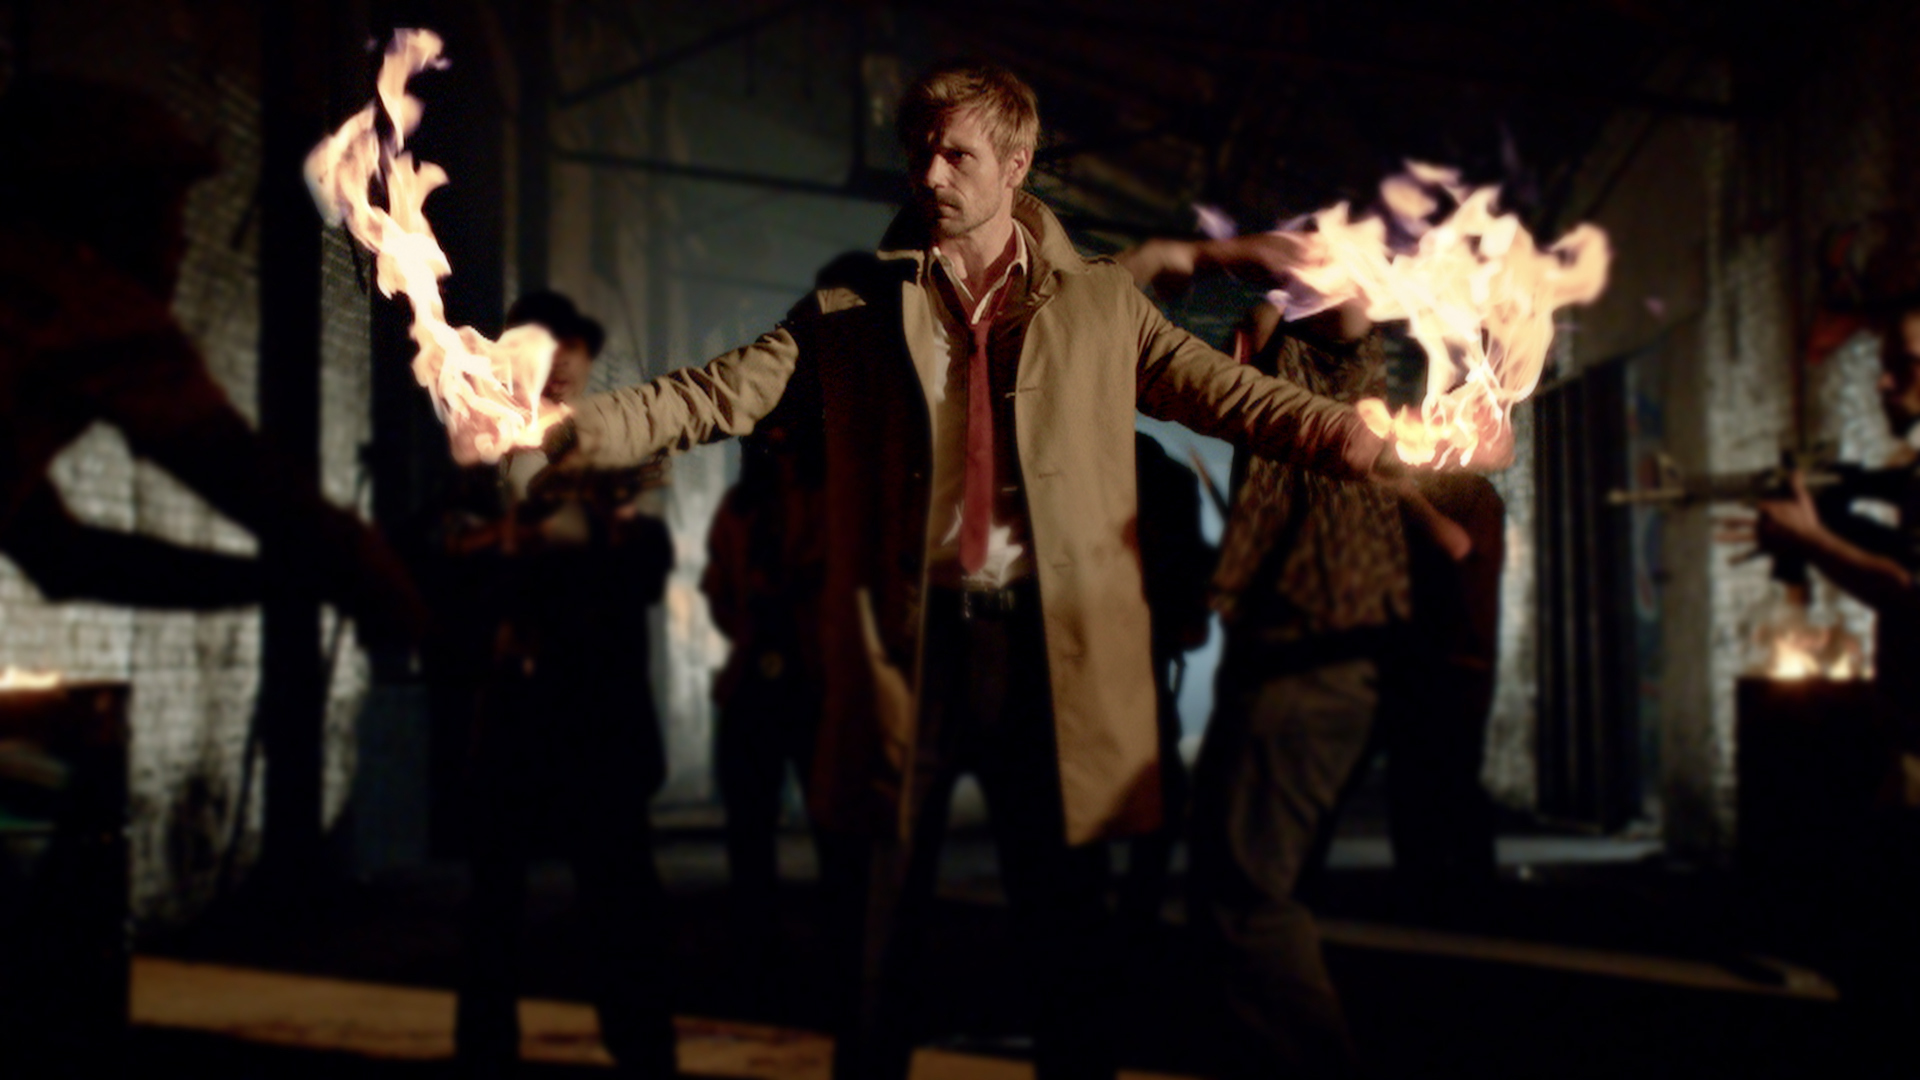 CONSTANTINE POST-MORTEM[?] :  A few words about networks' rating-based decisions and not letting the media break your fan-spirit